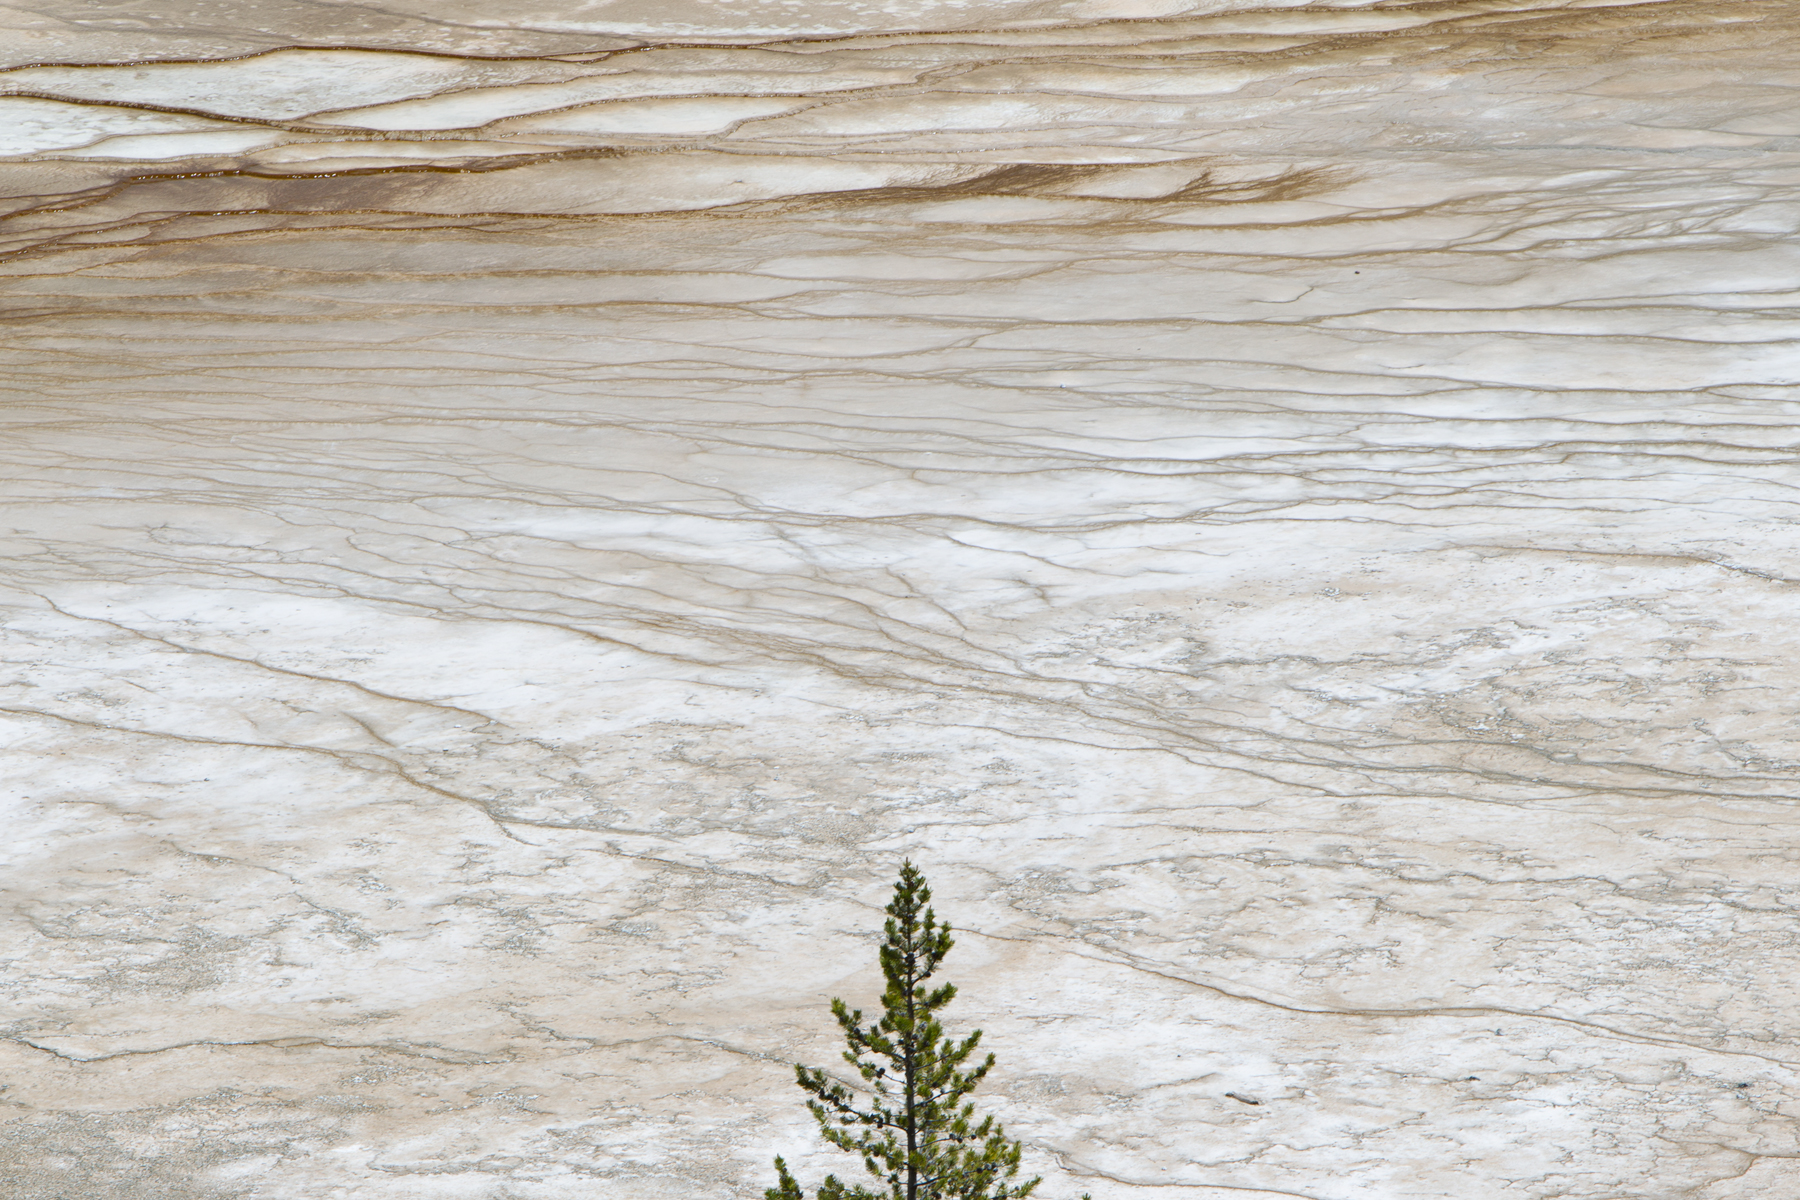 A lone tree marks itself as the final vegetation before an expanse of hot spring flats in Yellowstone National Park, USA.  Image ©Connor Stefanison